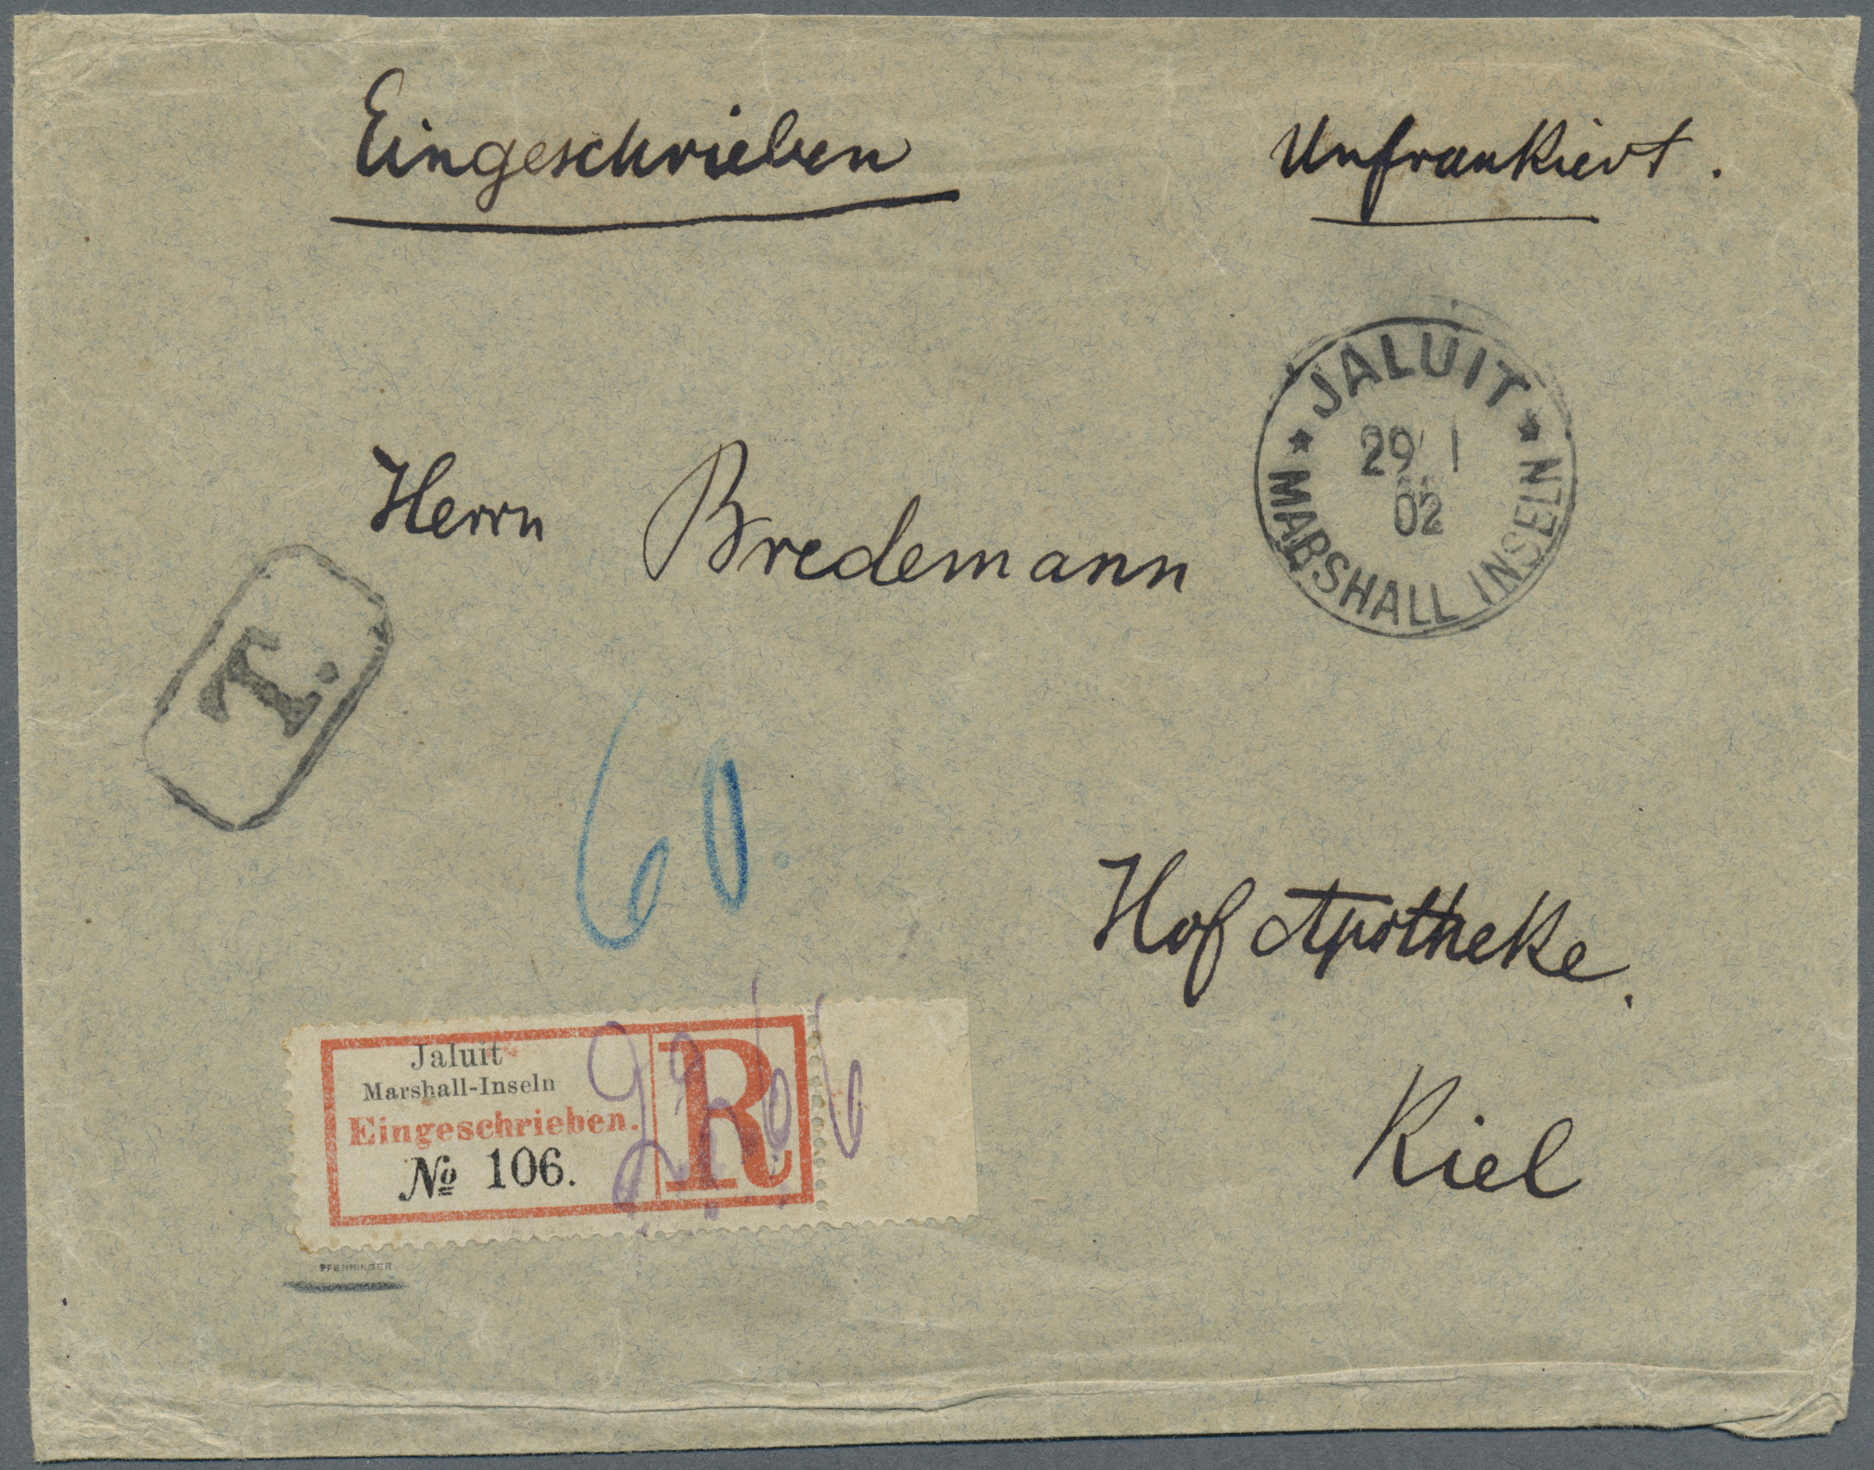 Lot 18783 - Deutsche Kolonien - Marshall-Inseln  -  Auktionshaus Christoph Gärtner GmbH & Co. KG Auction #40 Germany, Picture Post Cards, Collections Overseas, Thematics